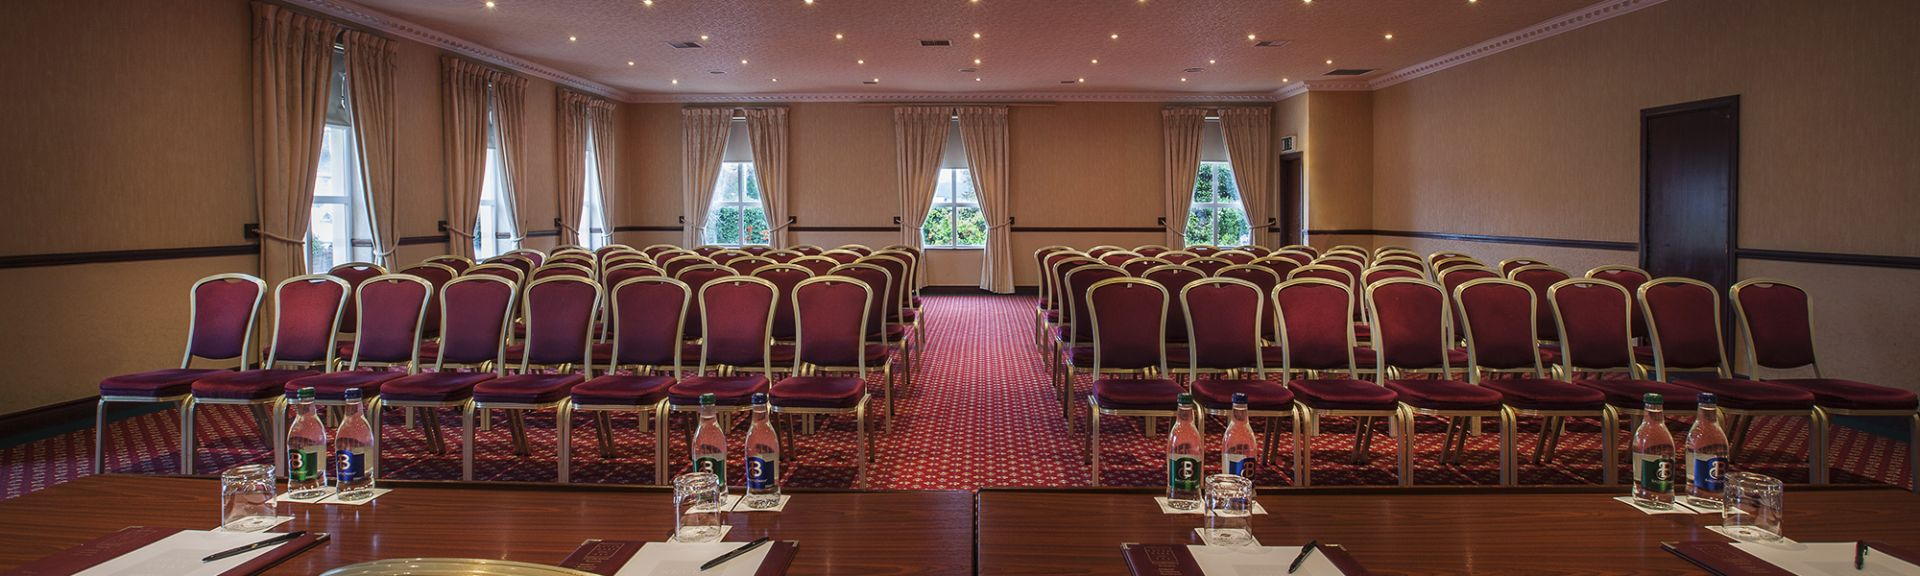 Hotel Conference Venue Carlow